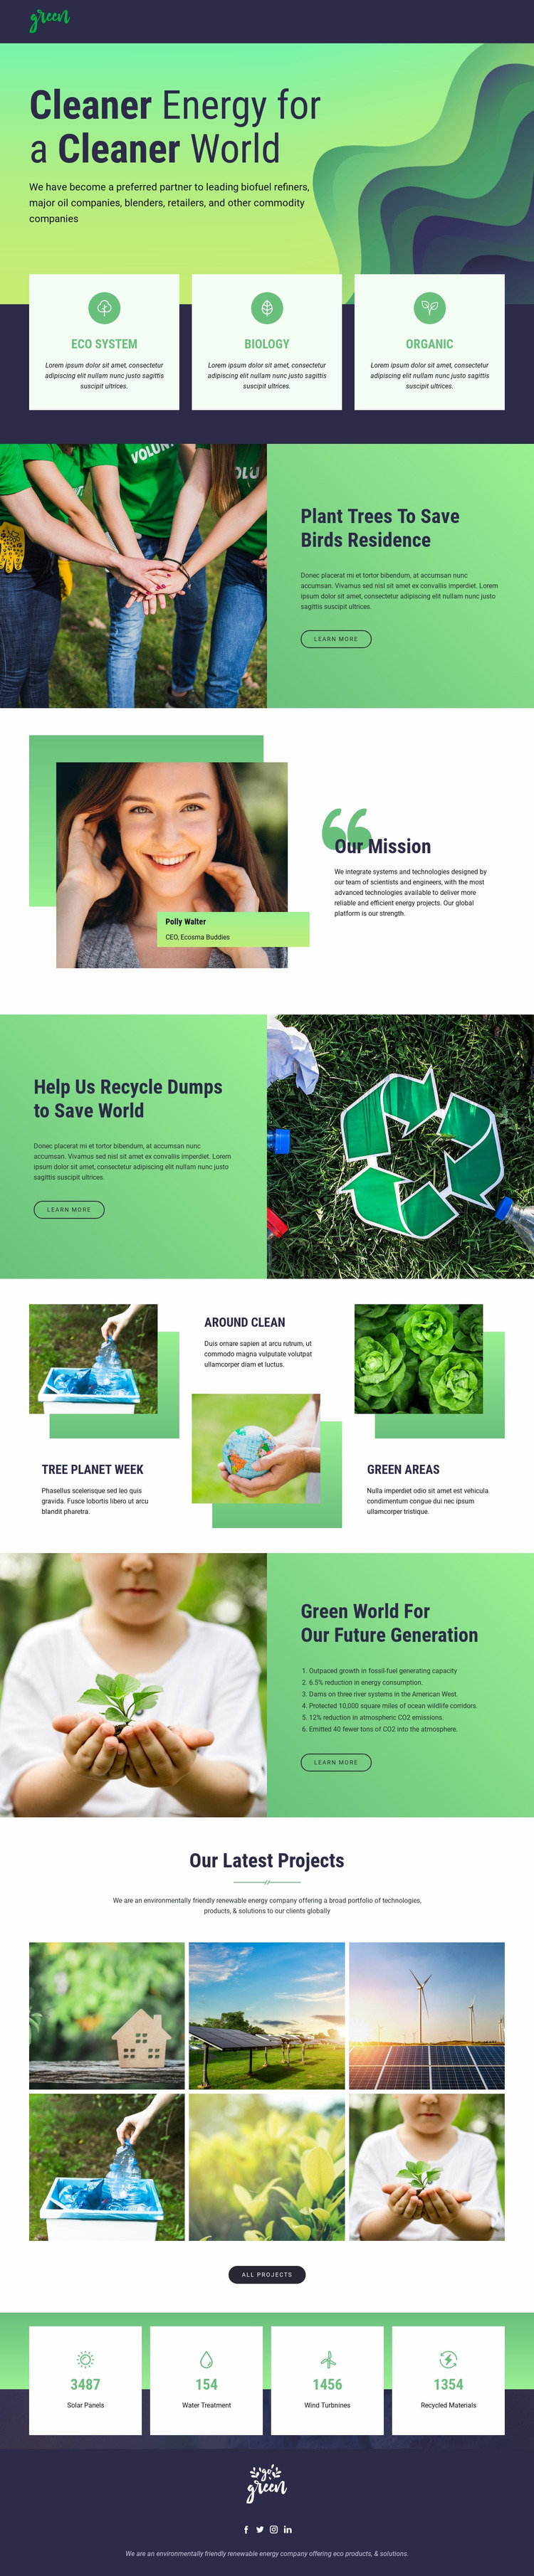 Clean energy to save nature Website Mockup